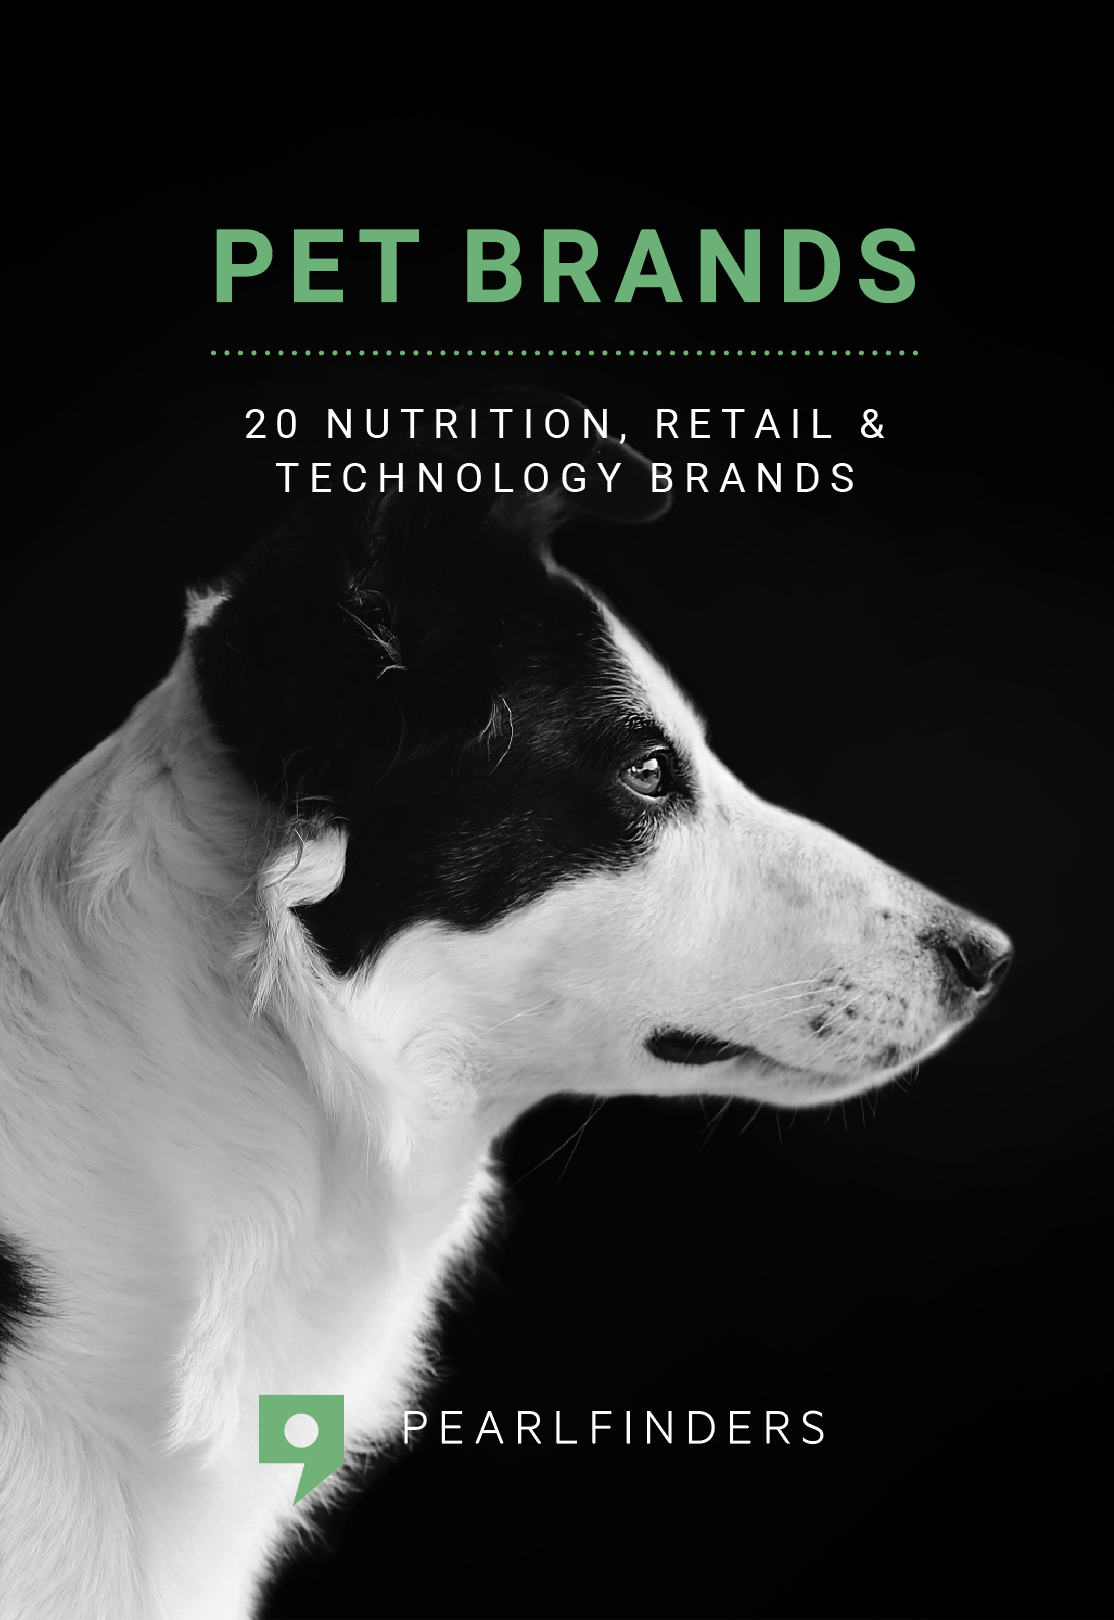 Pet brands cover.png